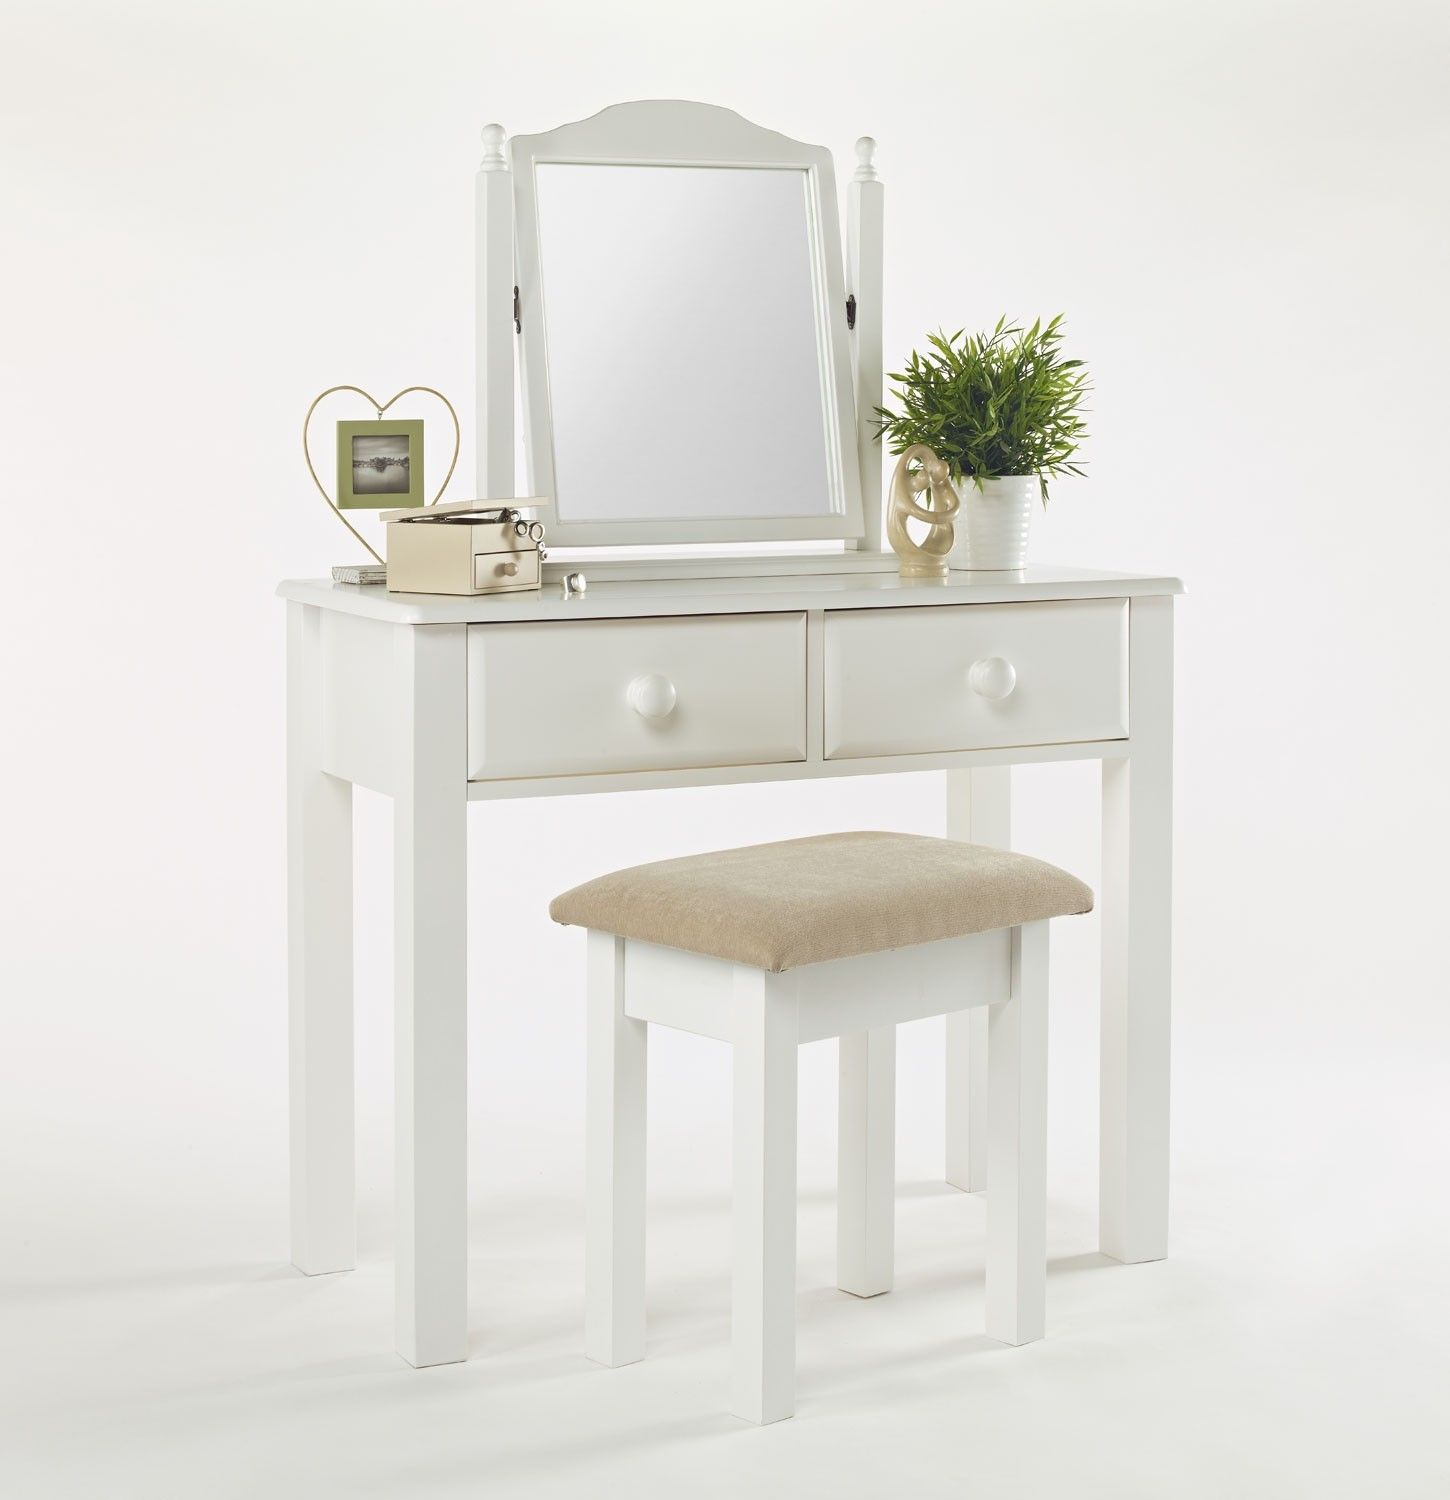 Bedroom furniture dressing table - Modern Style Furniture For The Bedroom White Wood Small White Dressing Tabledressing